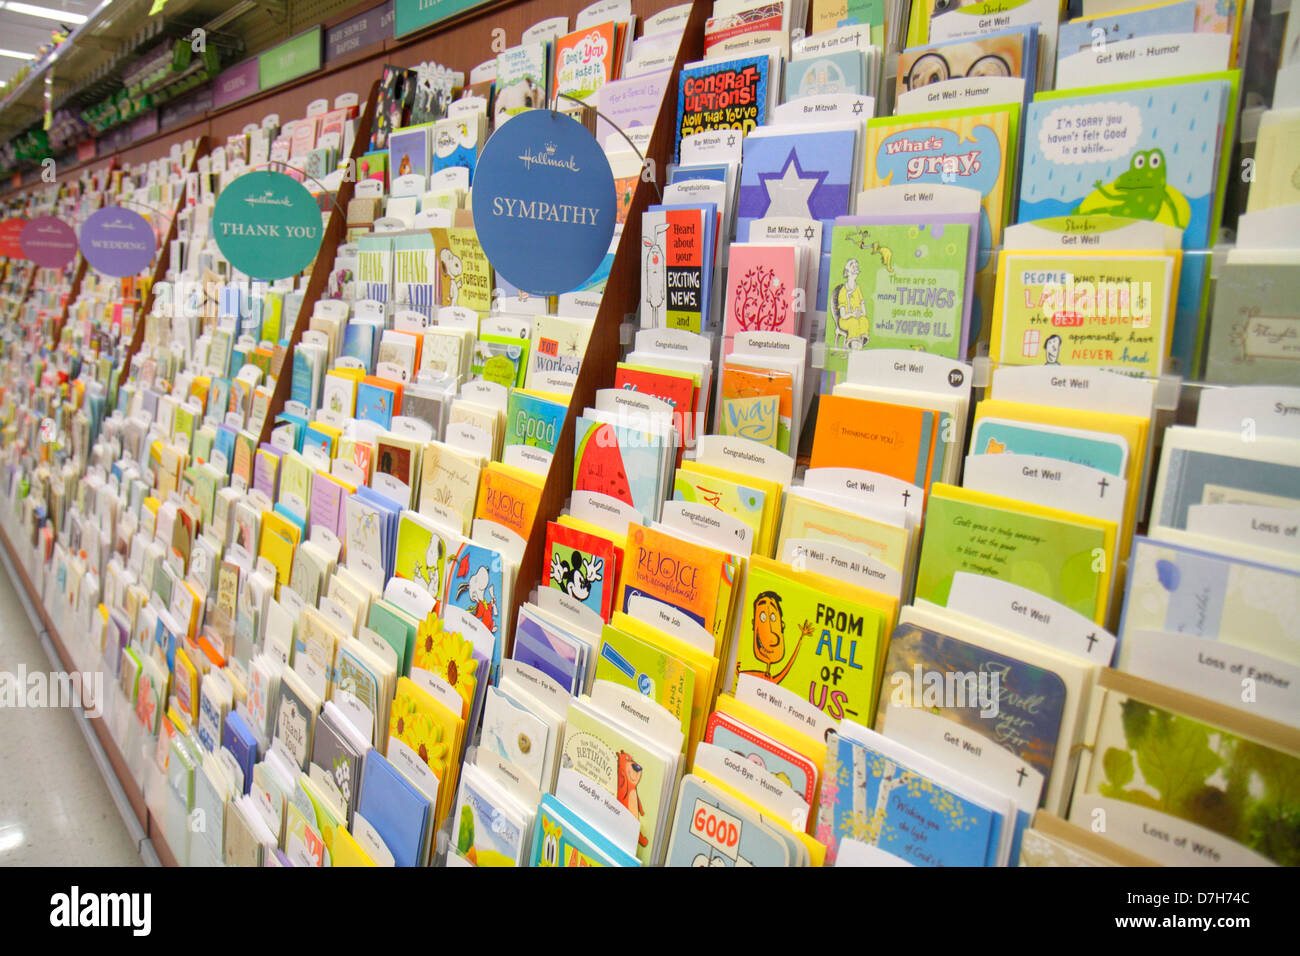 Hallmark Store Stock Photos & Hallmark Store Stock Images - Alamy